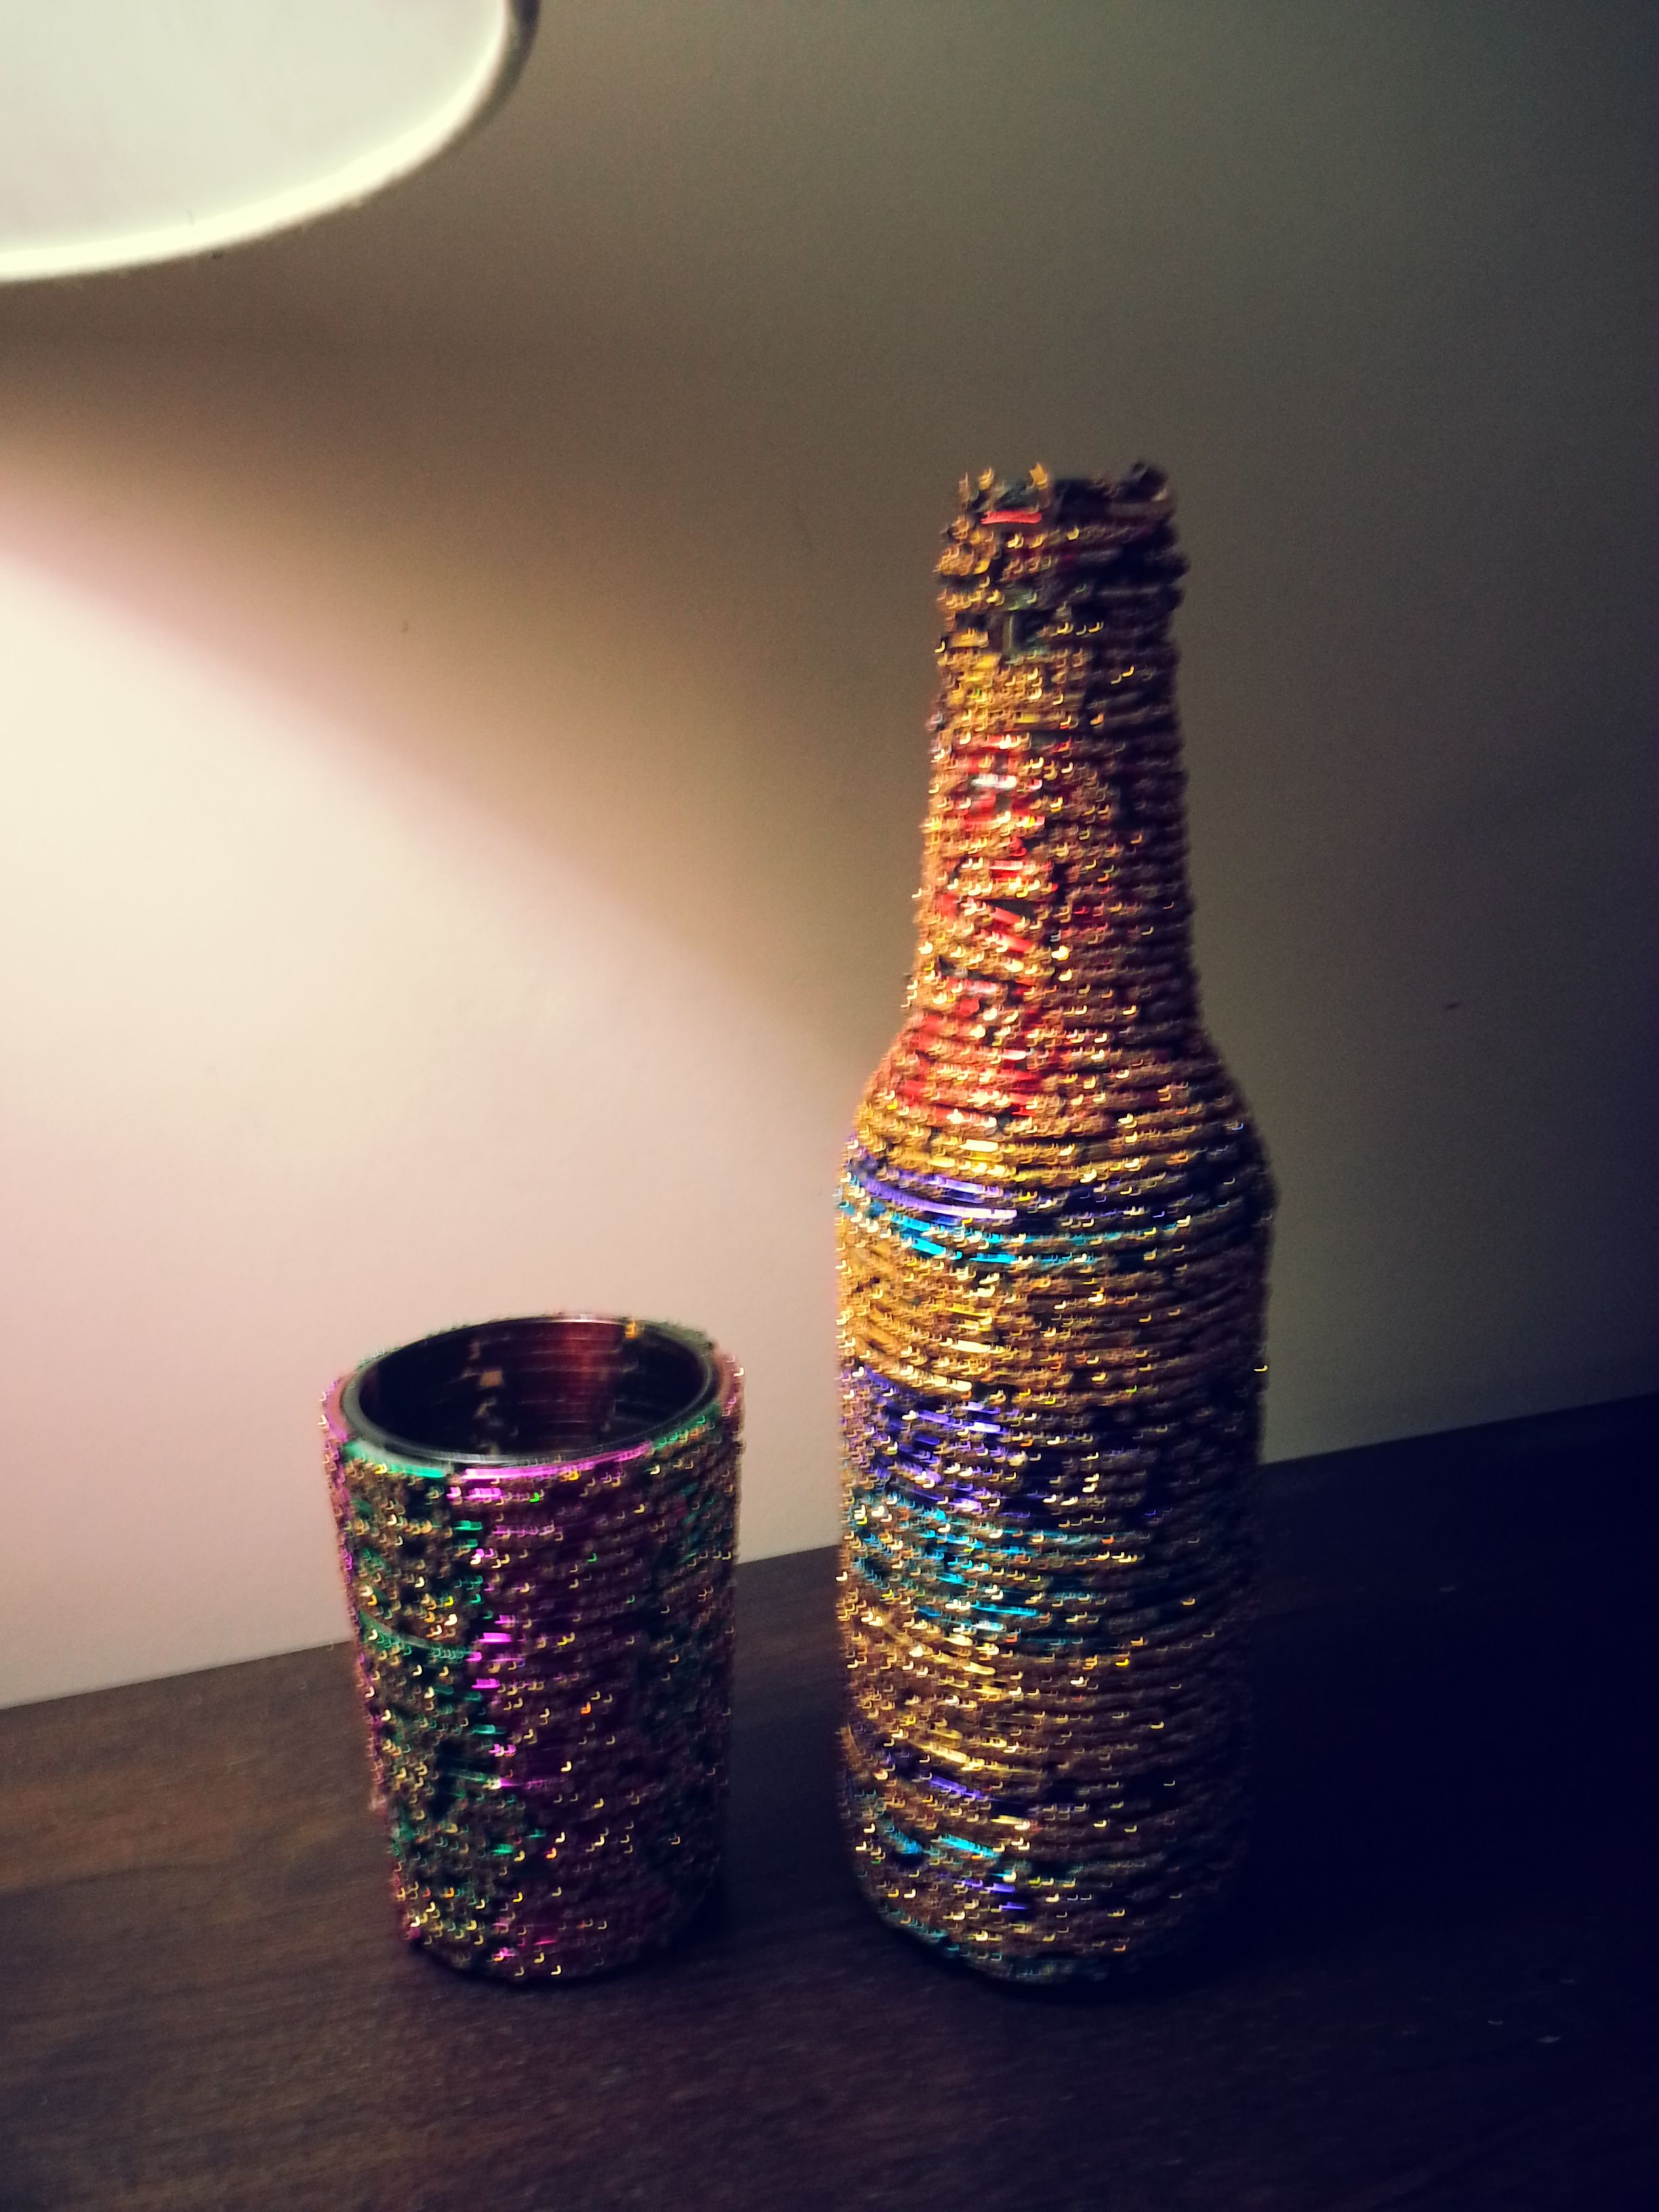 9 waste bangles art ideas activity for joy pinterest for Creativity out of waste